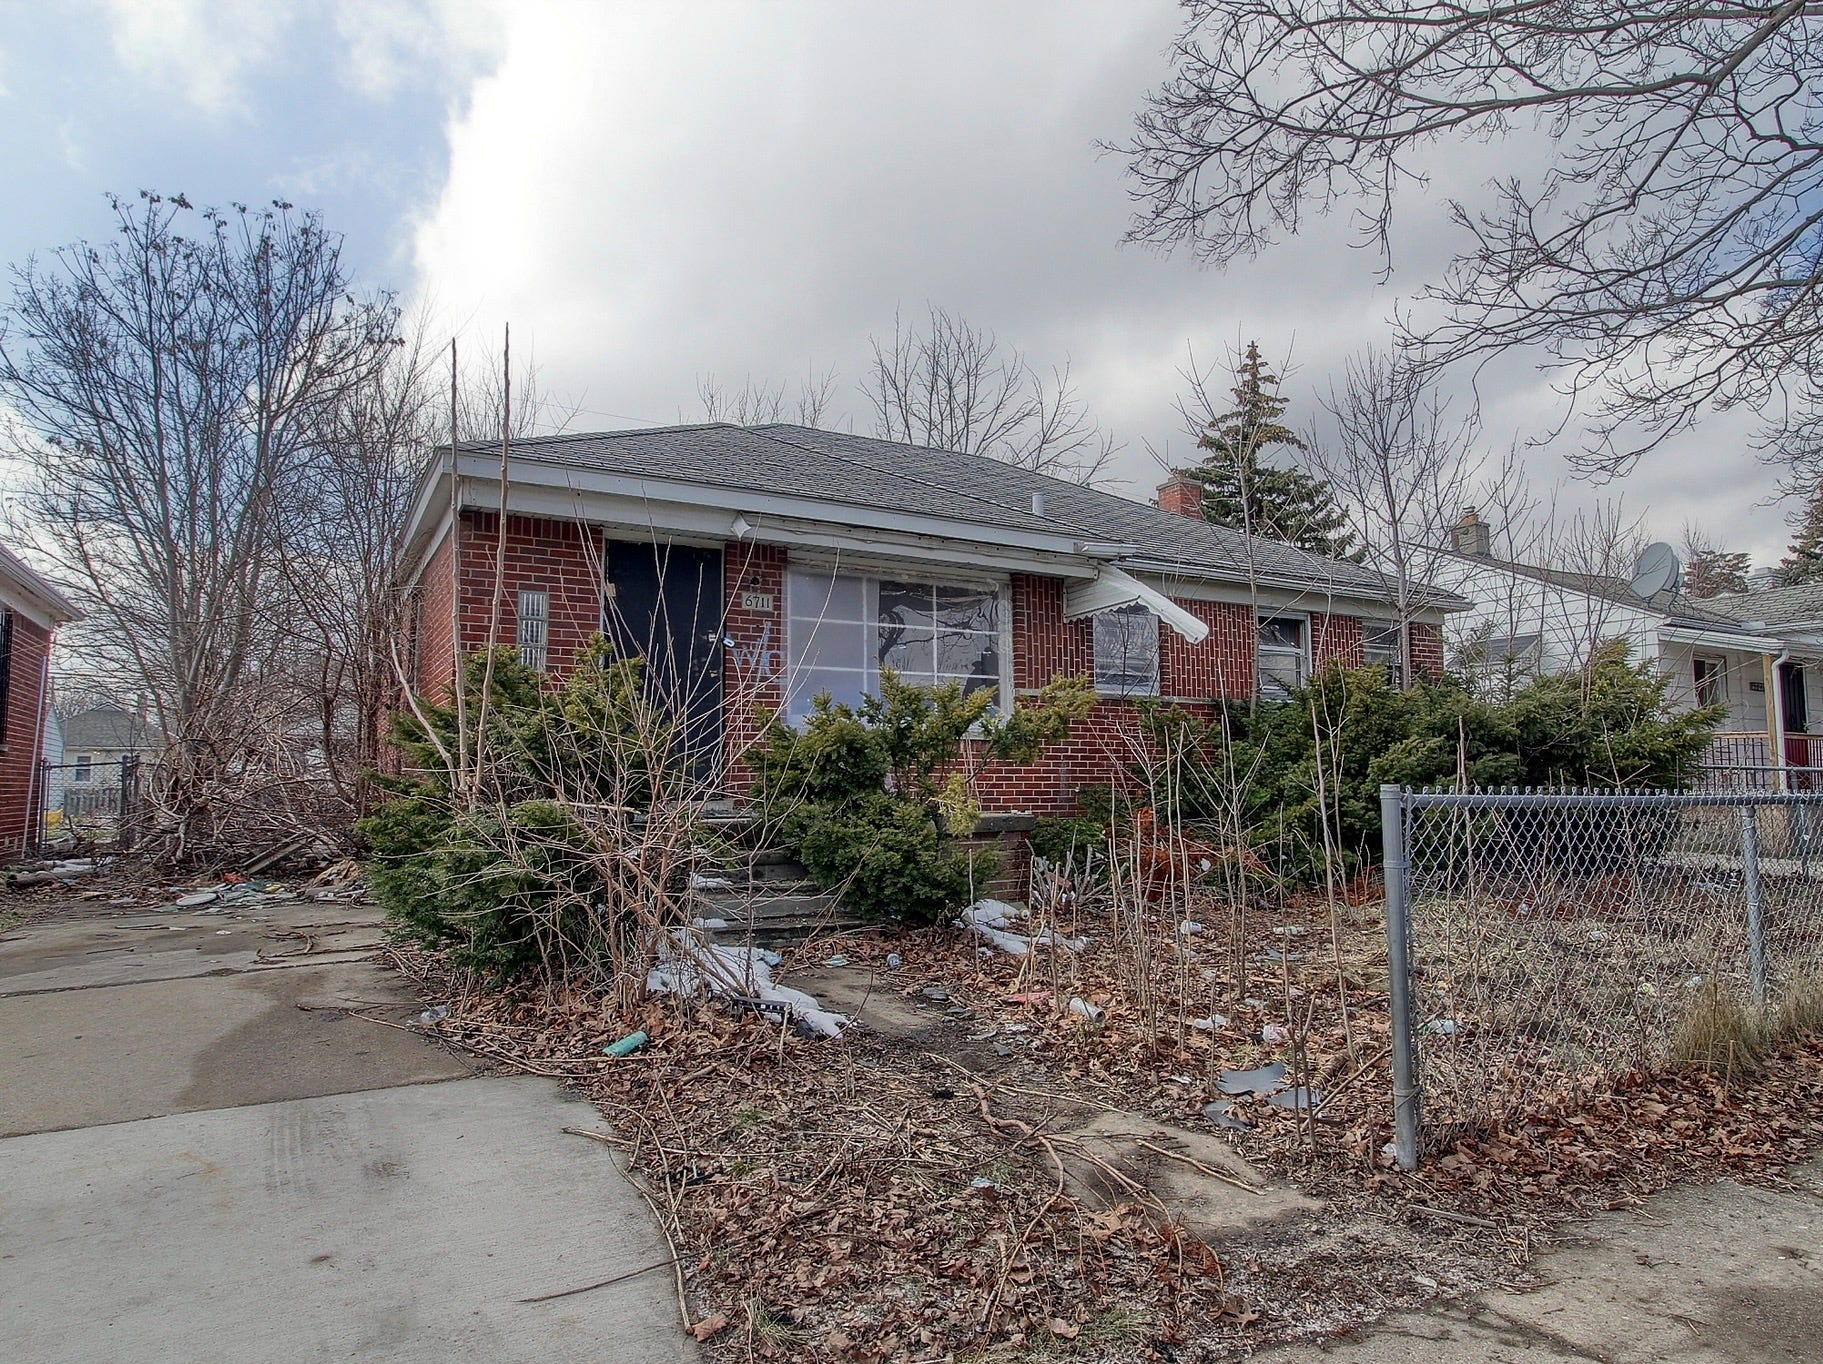 Before: This is how the exterior of Maria Walkenback's new home in Detroit's Warrendale neighborhood looked before it was renovated for her through the city's Bridging Neighborhoods home-swap program.